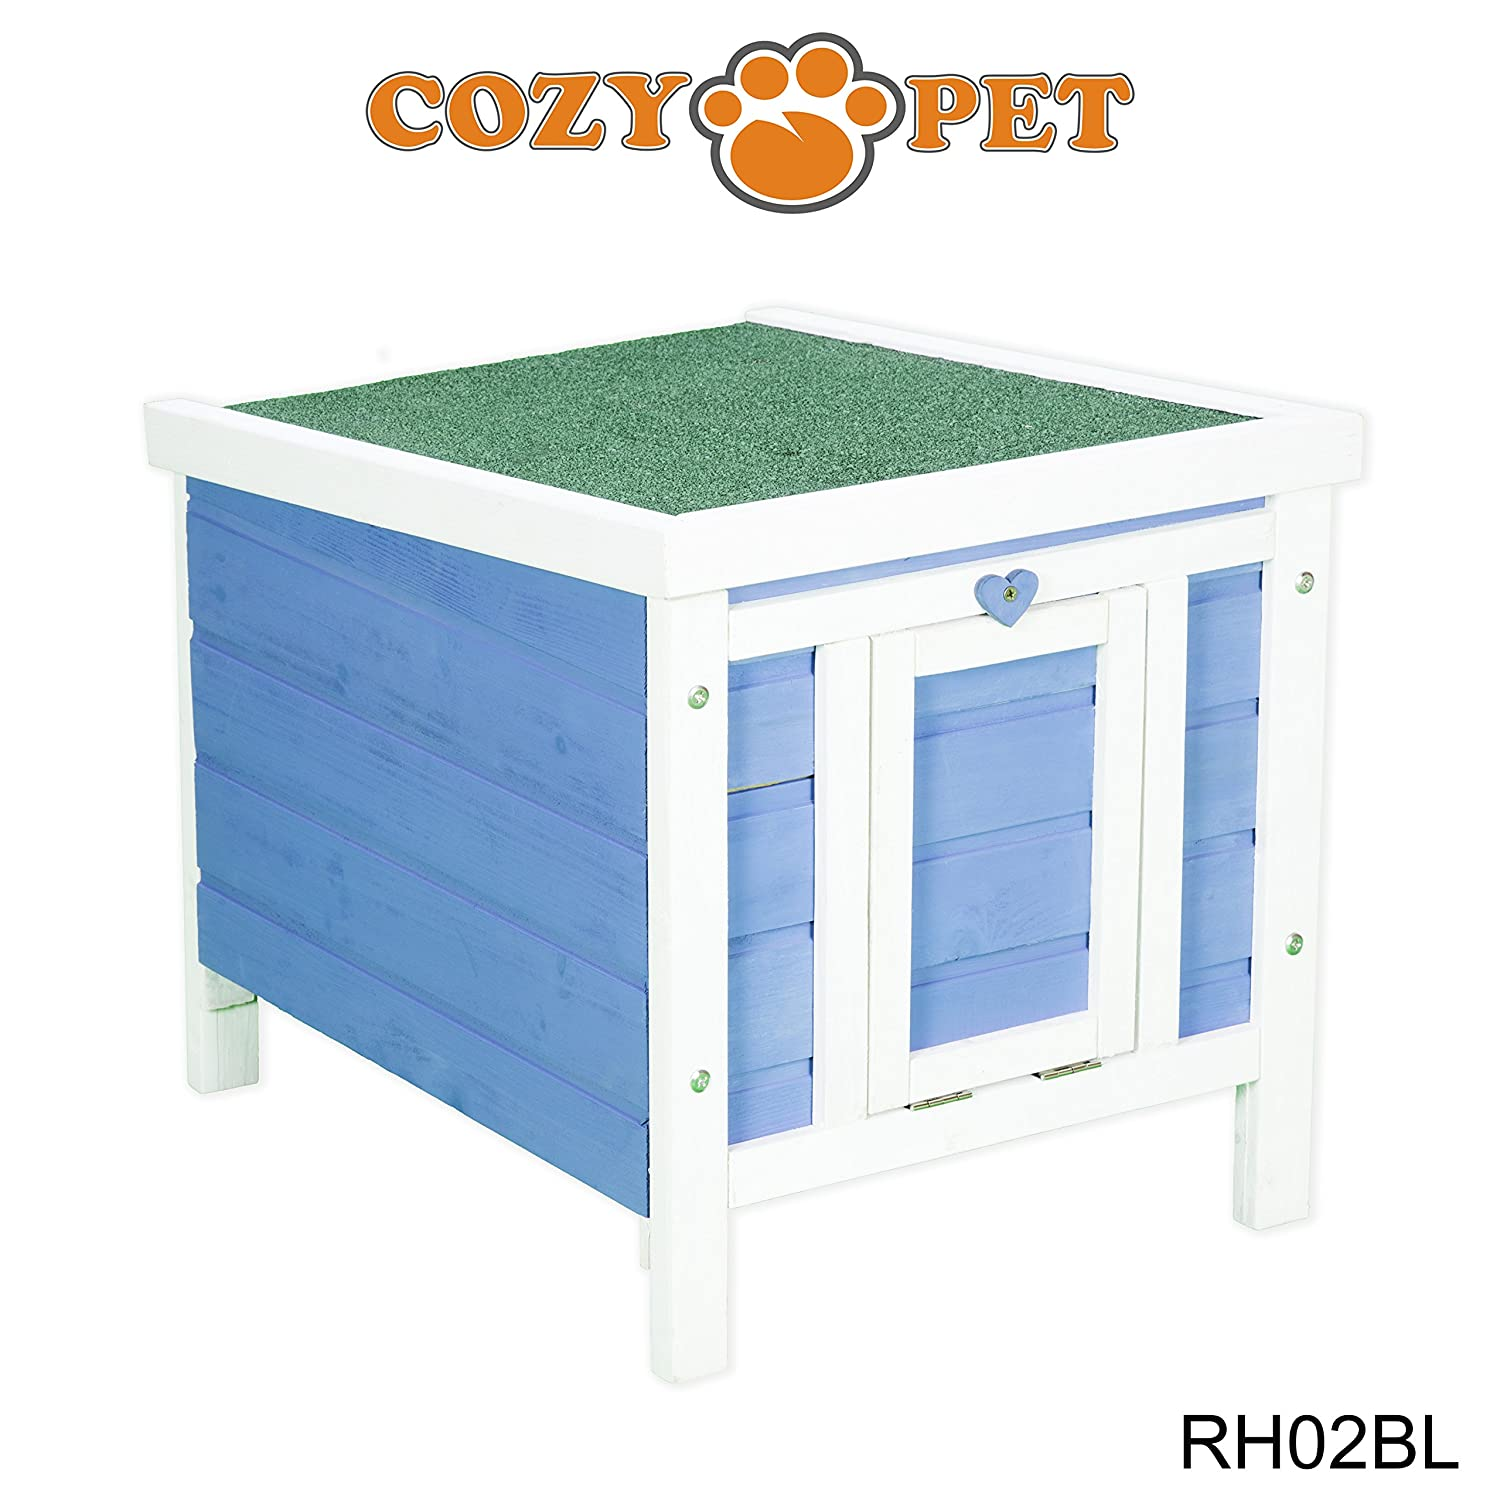 blueE RH02BL  bluee HideCozy Pet Rabbit Hutch Guinea Pig Hutches Run Runs Large 2 Tier Double Decker Ferret Cage in Pink RH01P (We do not ship to Northern Ireland, Scottish Highlands & Islands, Channel Islands, IOM or IOW)